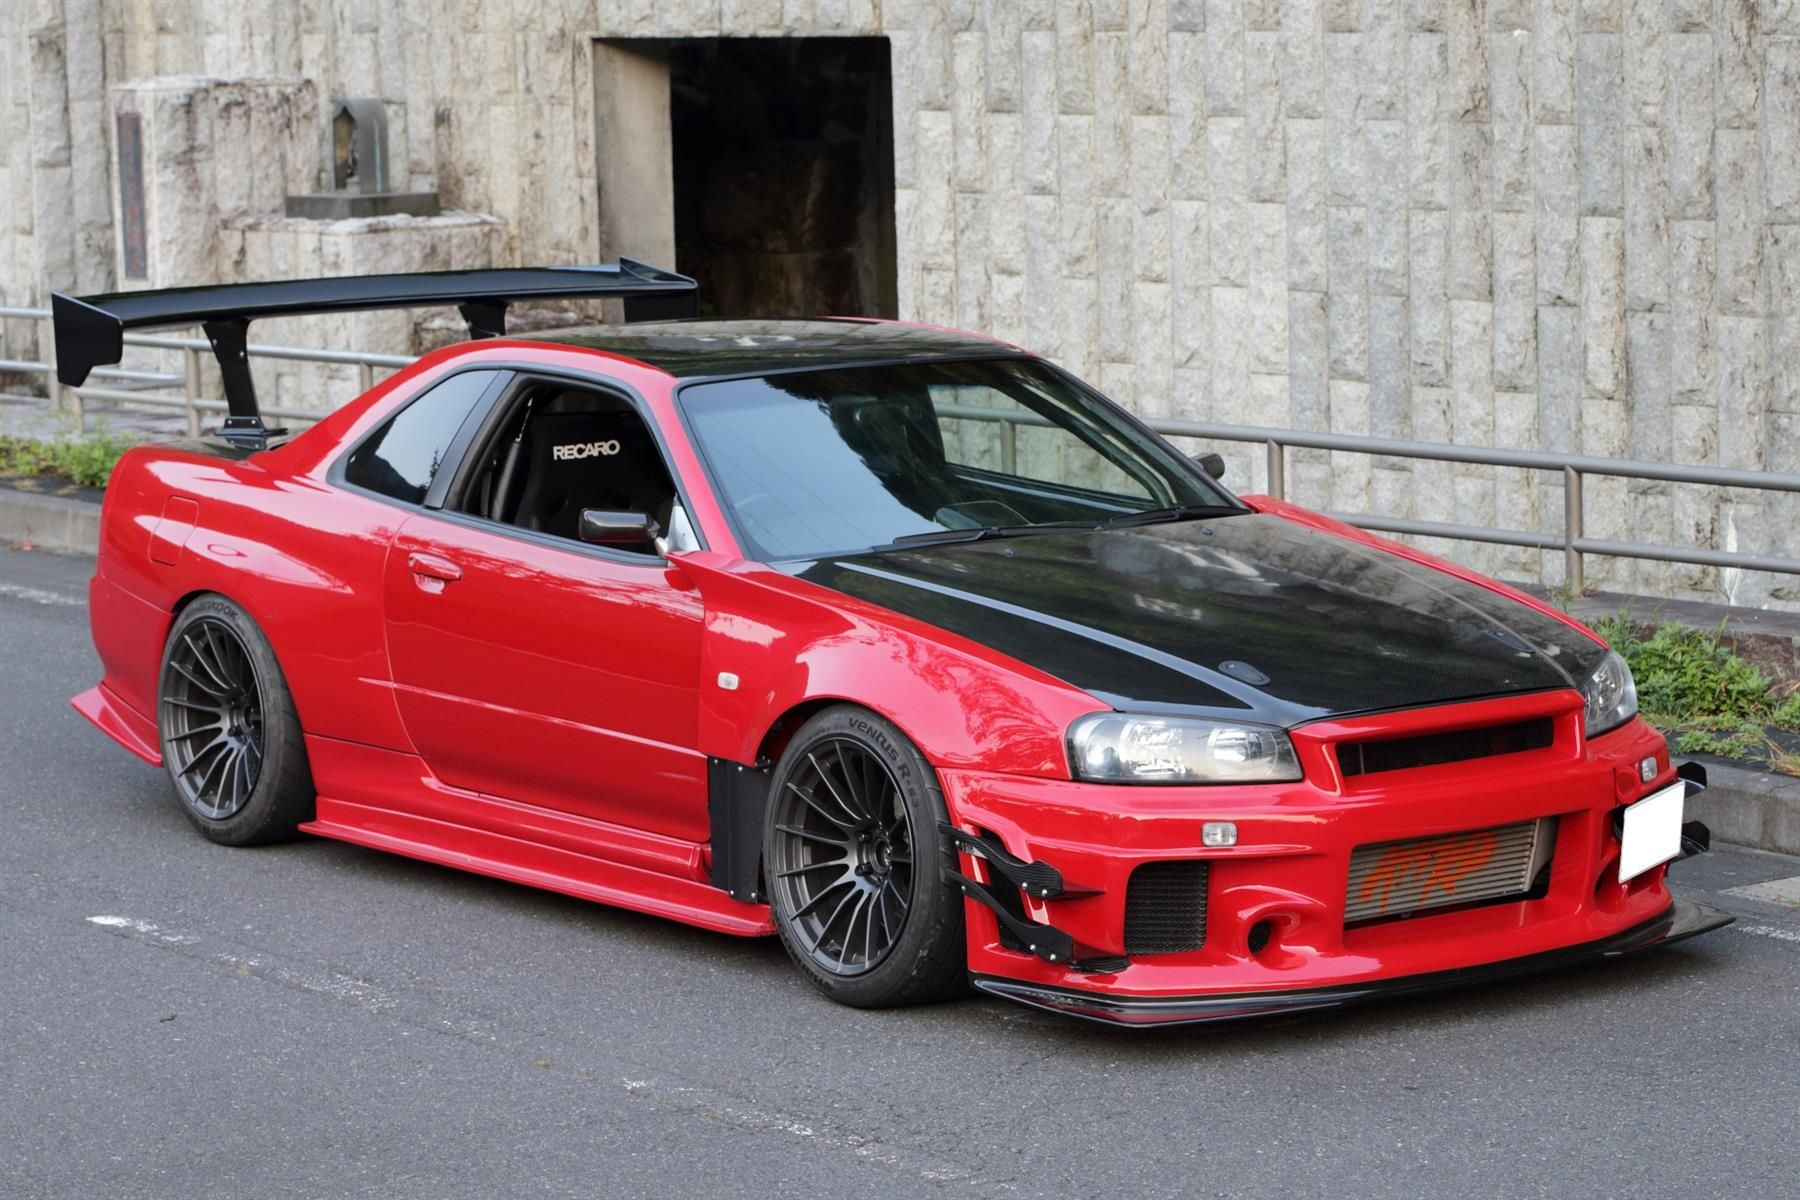 Used Nissan Gt-r for Sale Inspirational Used 1999 Nissan Skyline R34 for Sale In Es